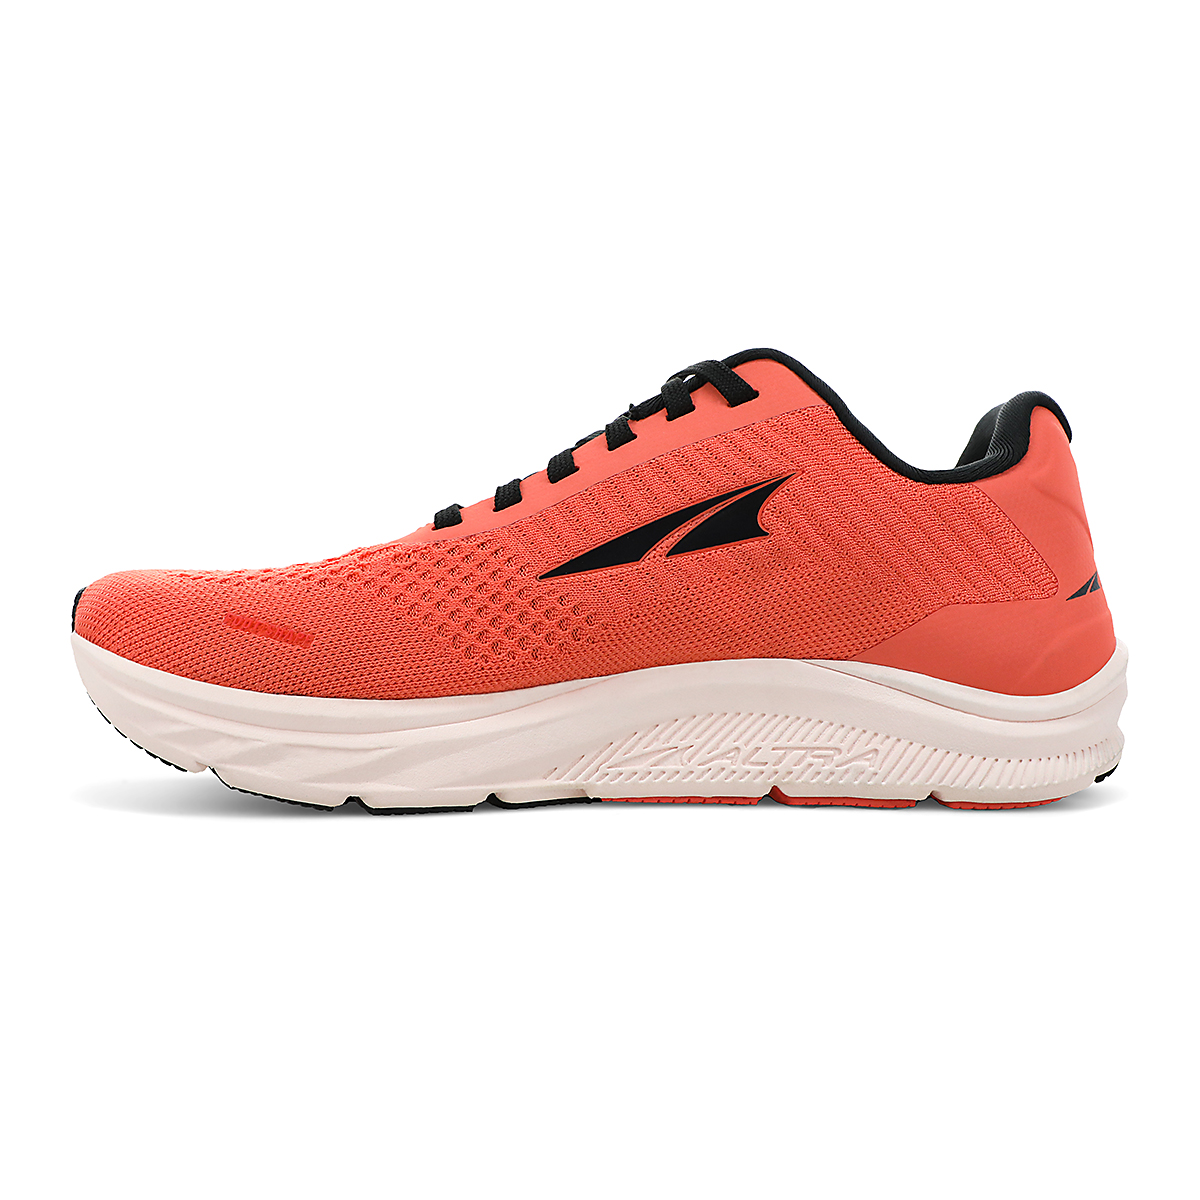 Women's Altra Torin 4.5 Plush Running Shoe - Color: Coral - Size: 5.5 - Width: Regular, Coral, large, image 2